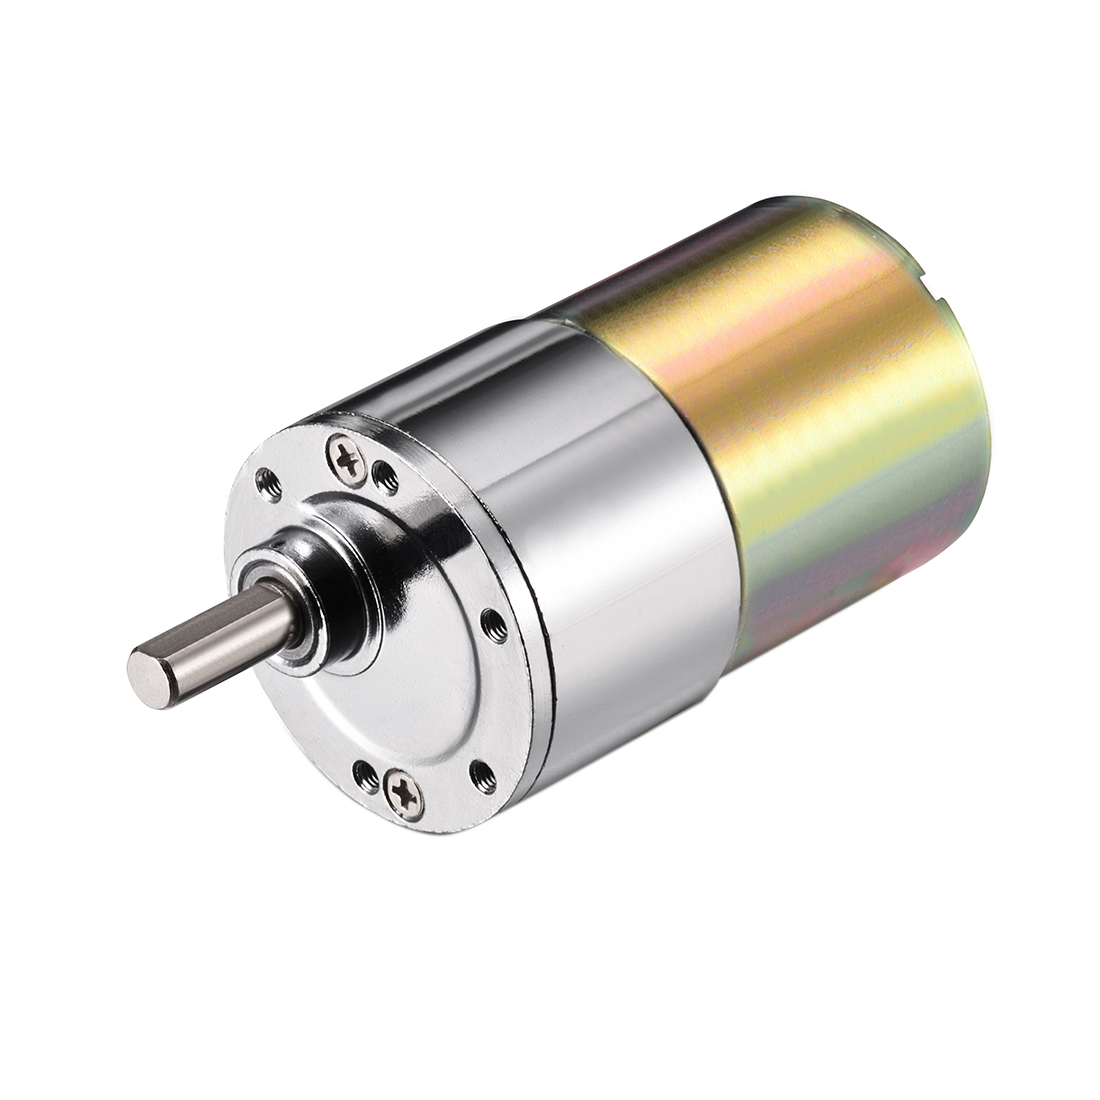 DC 24V 400RPM Micro Gear Box Motor Speed Reduction Electric Gearbox Eccentric Output Shaft